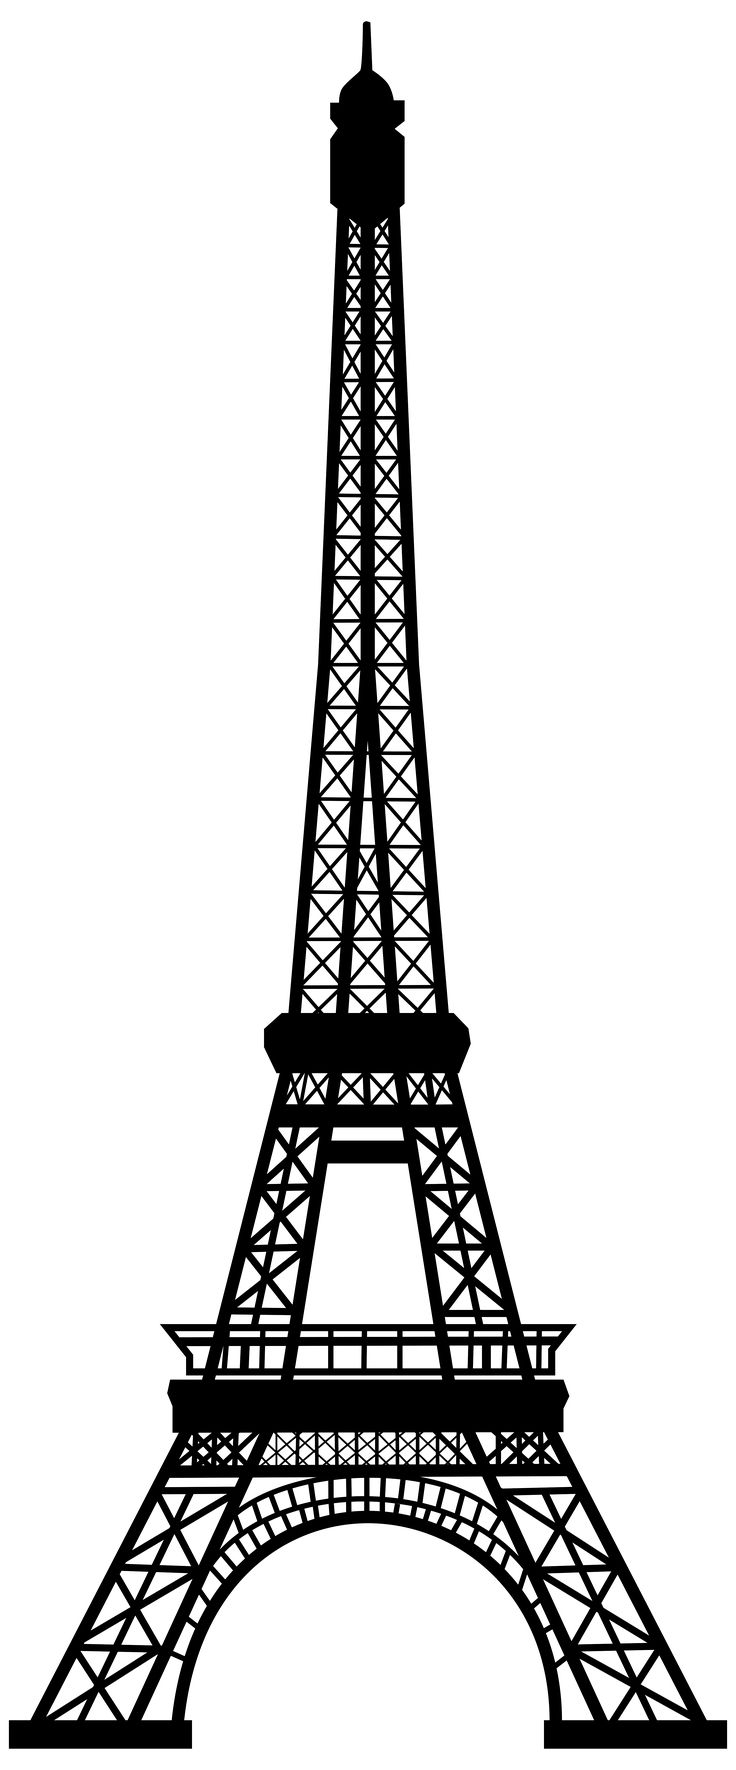 drawing of the eiffel tower stock pictures eiffel tower sketches and silhouettes the eiffel tower drawing of